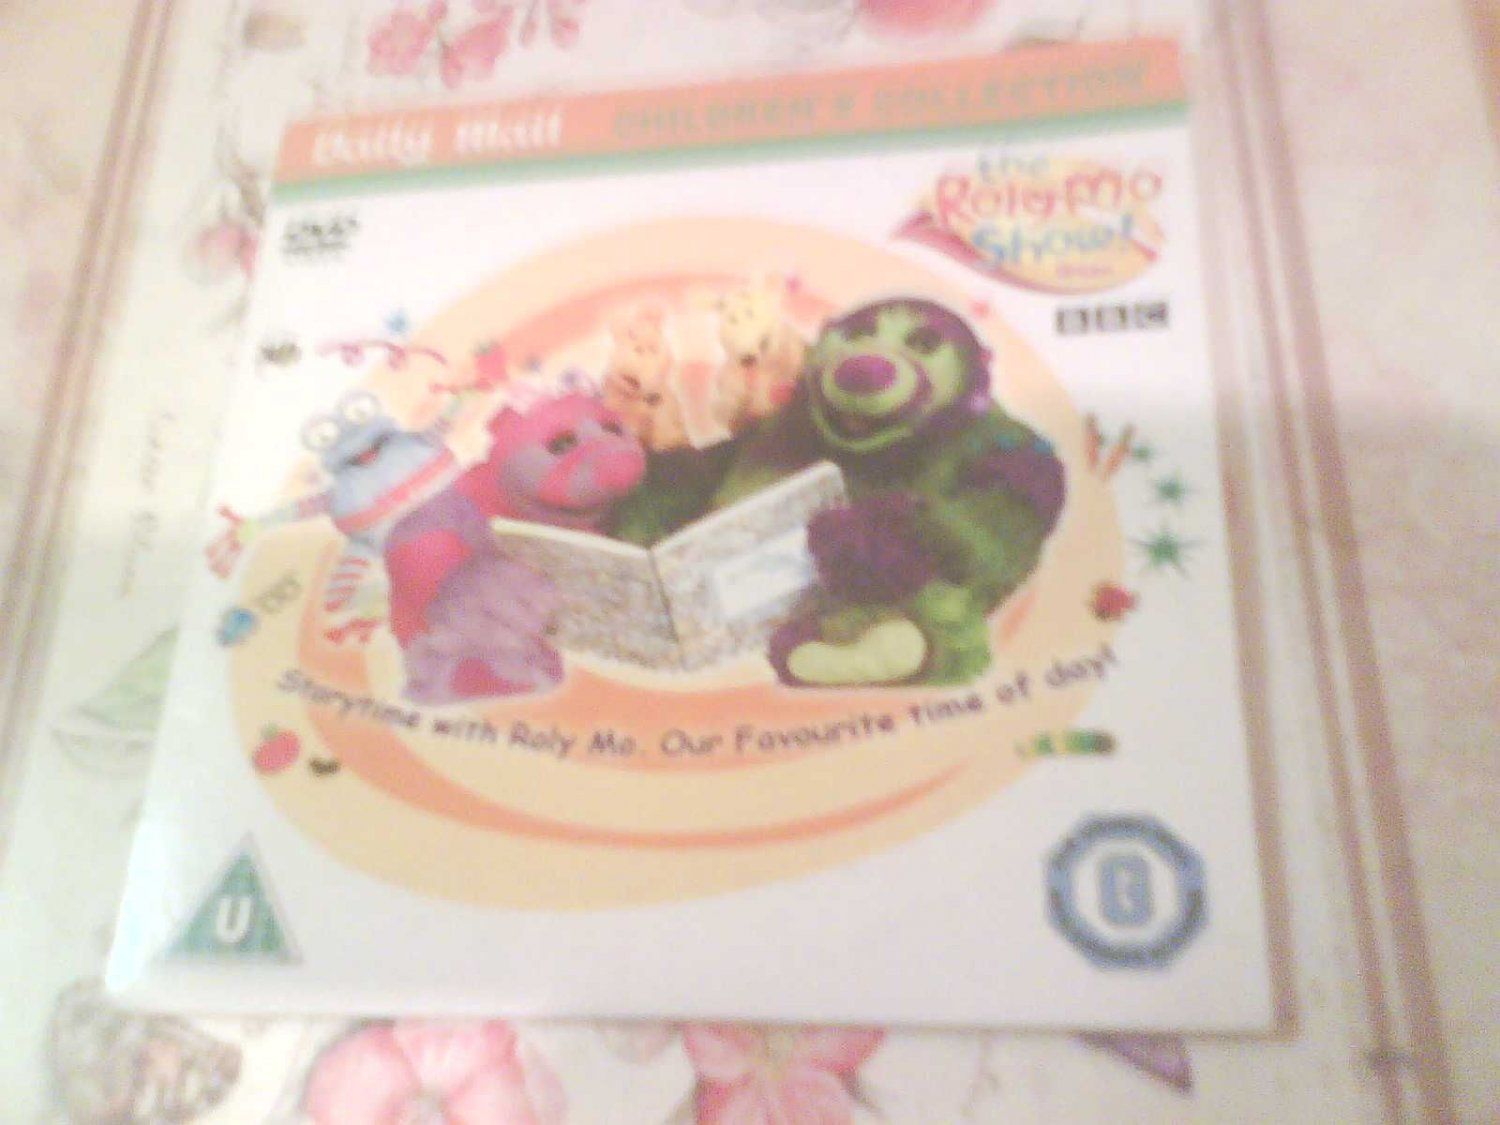 Roly Mo Show DVD Promo The Mail Story Time Fimbles Kids